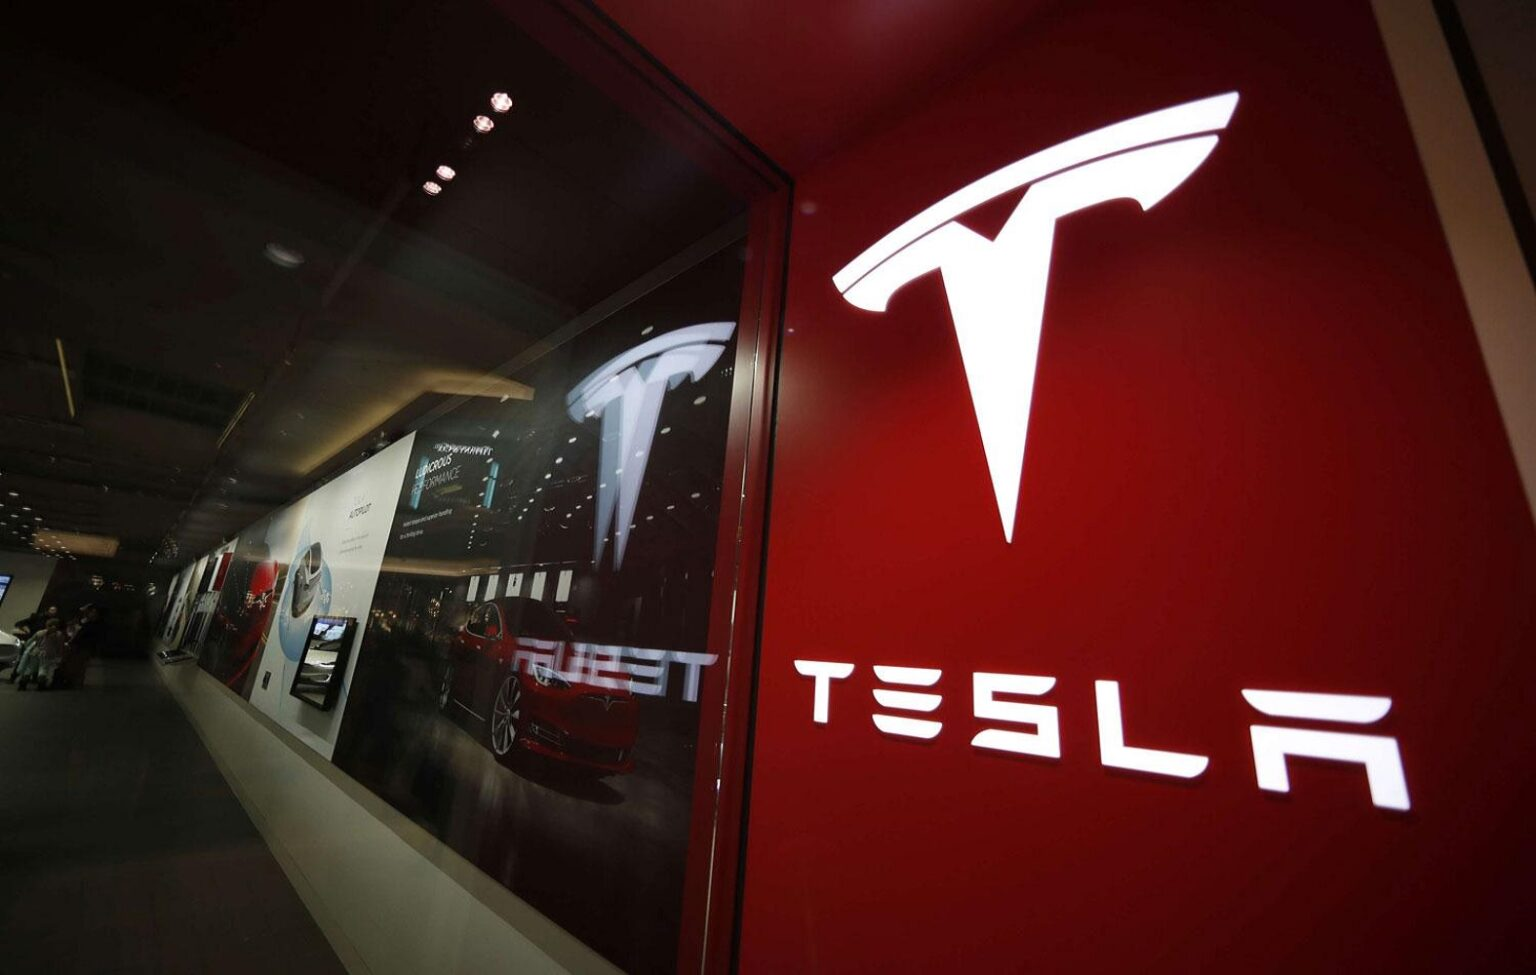 Tesla Inc.'s short sellers lost tens of billions of dollars last year as the stock surged to new highs.